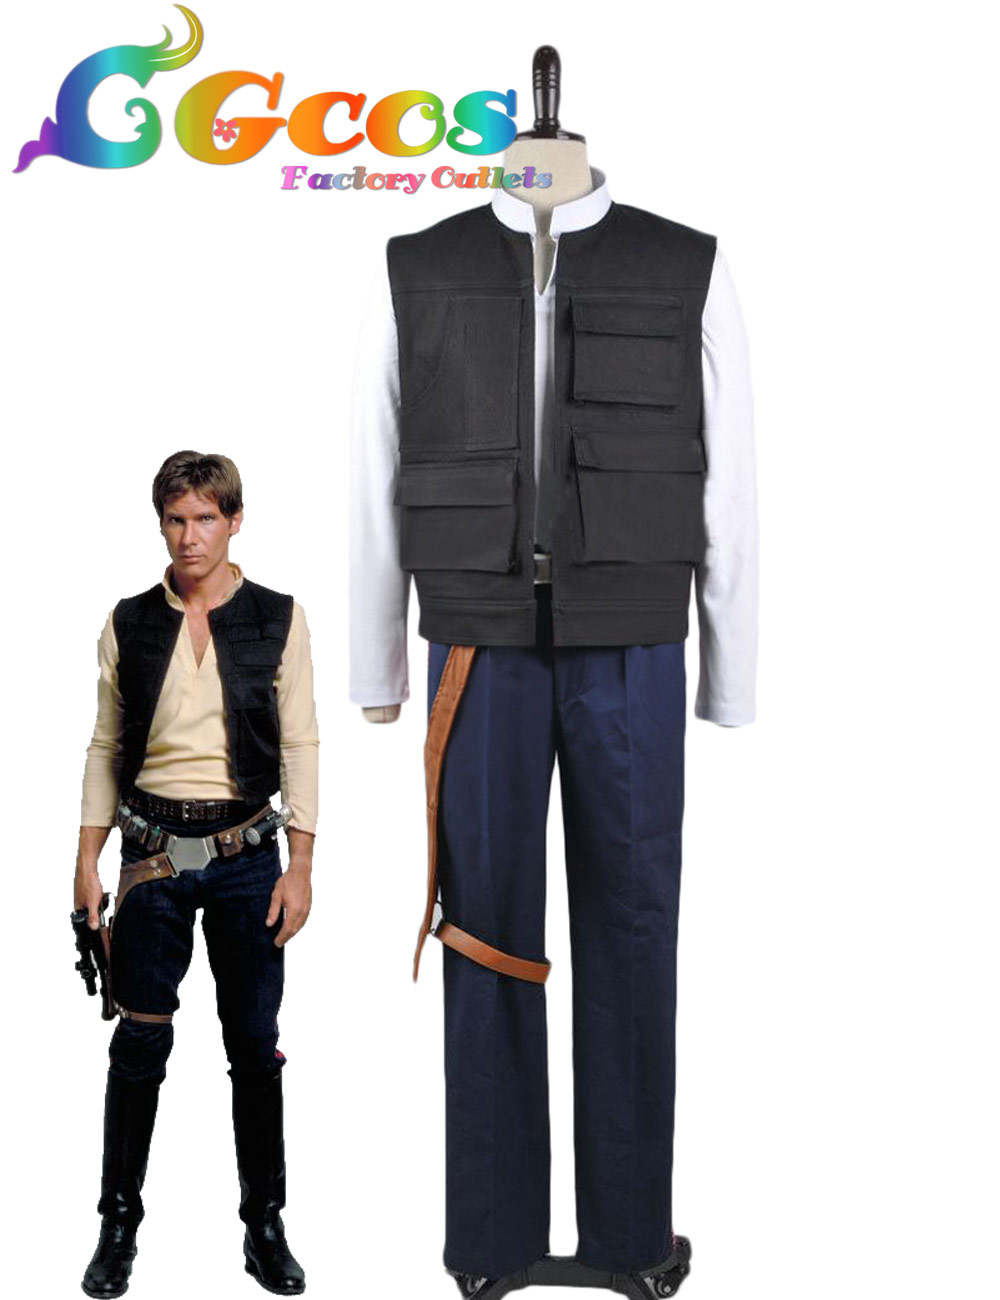 How to Use Ultimate Star Wars Costumes Coupons spanarpatri.ml is an online vendor of officially licensed Star Wars costumes and accessories. They offer free shipping on orders over $70 using the coupon code on the homepage. You will find the best deals at spanarpatri.ml in the Clearance section of the website.